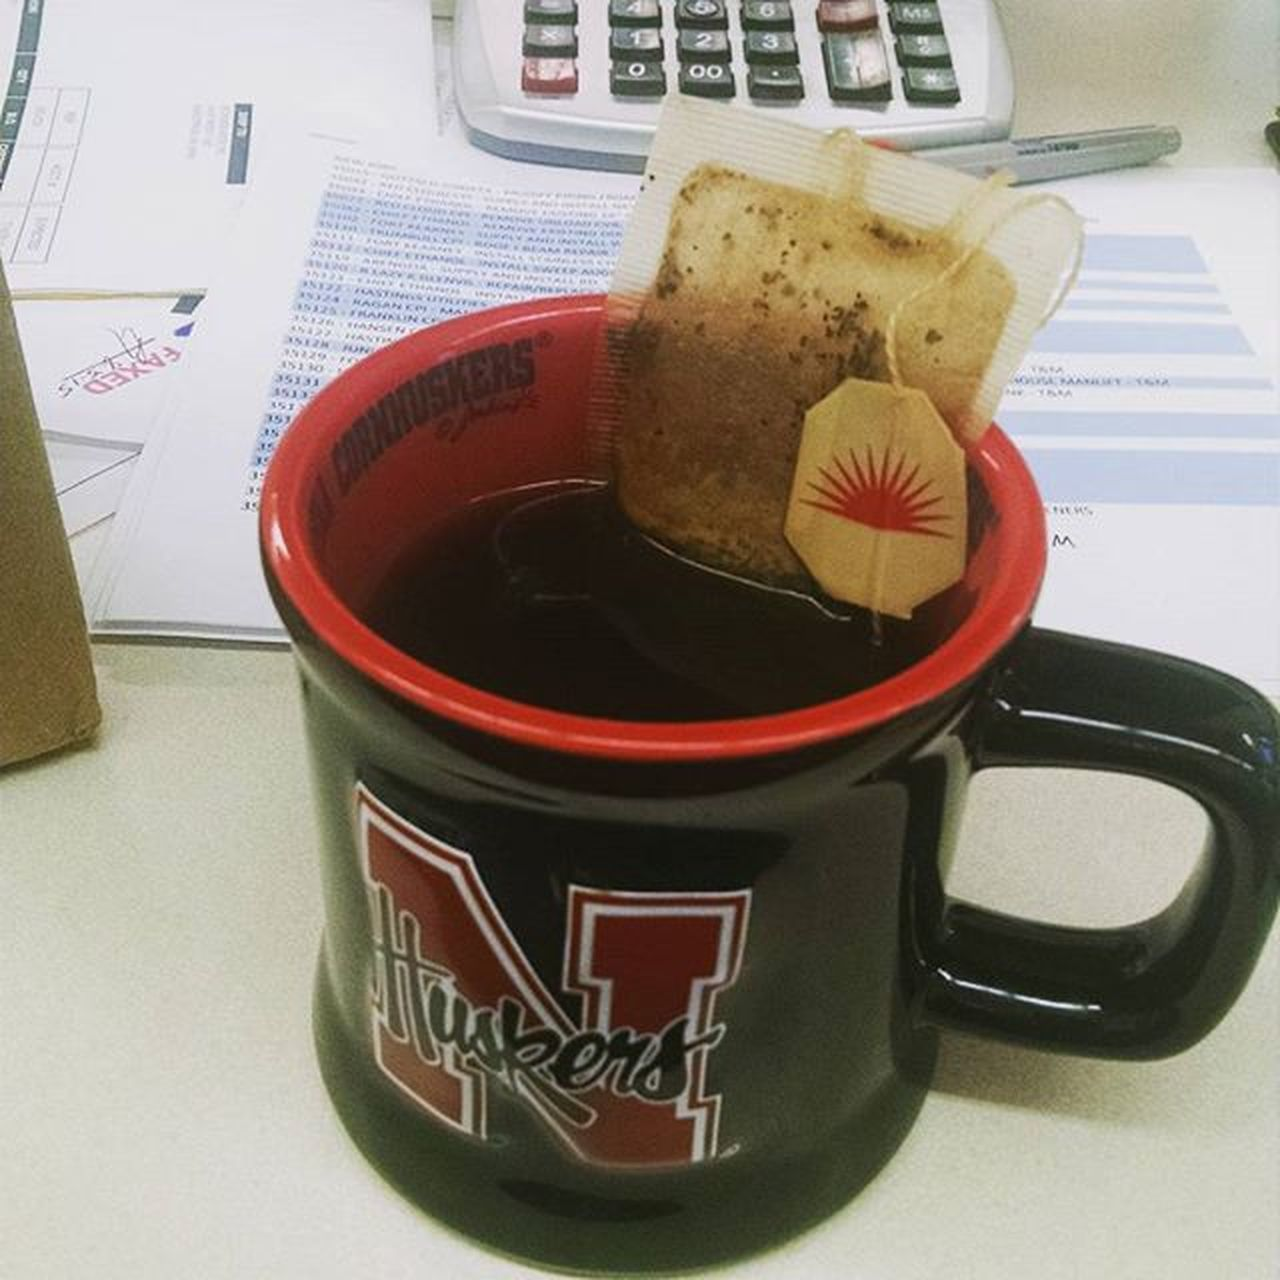 So this is how Dependant I'm getting on Coffee in the Morning . Lipton instantcoffee reallynottoobad husker mug work GBR